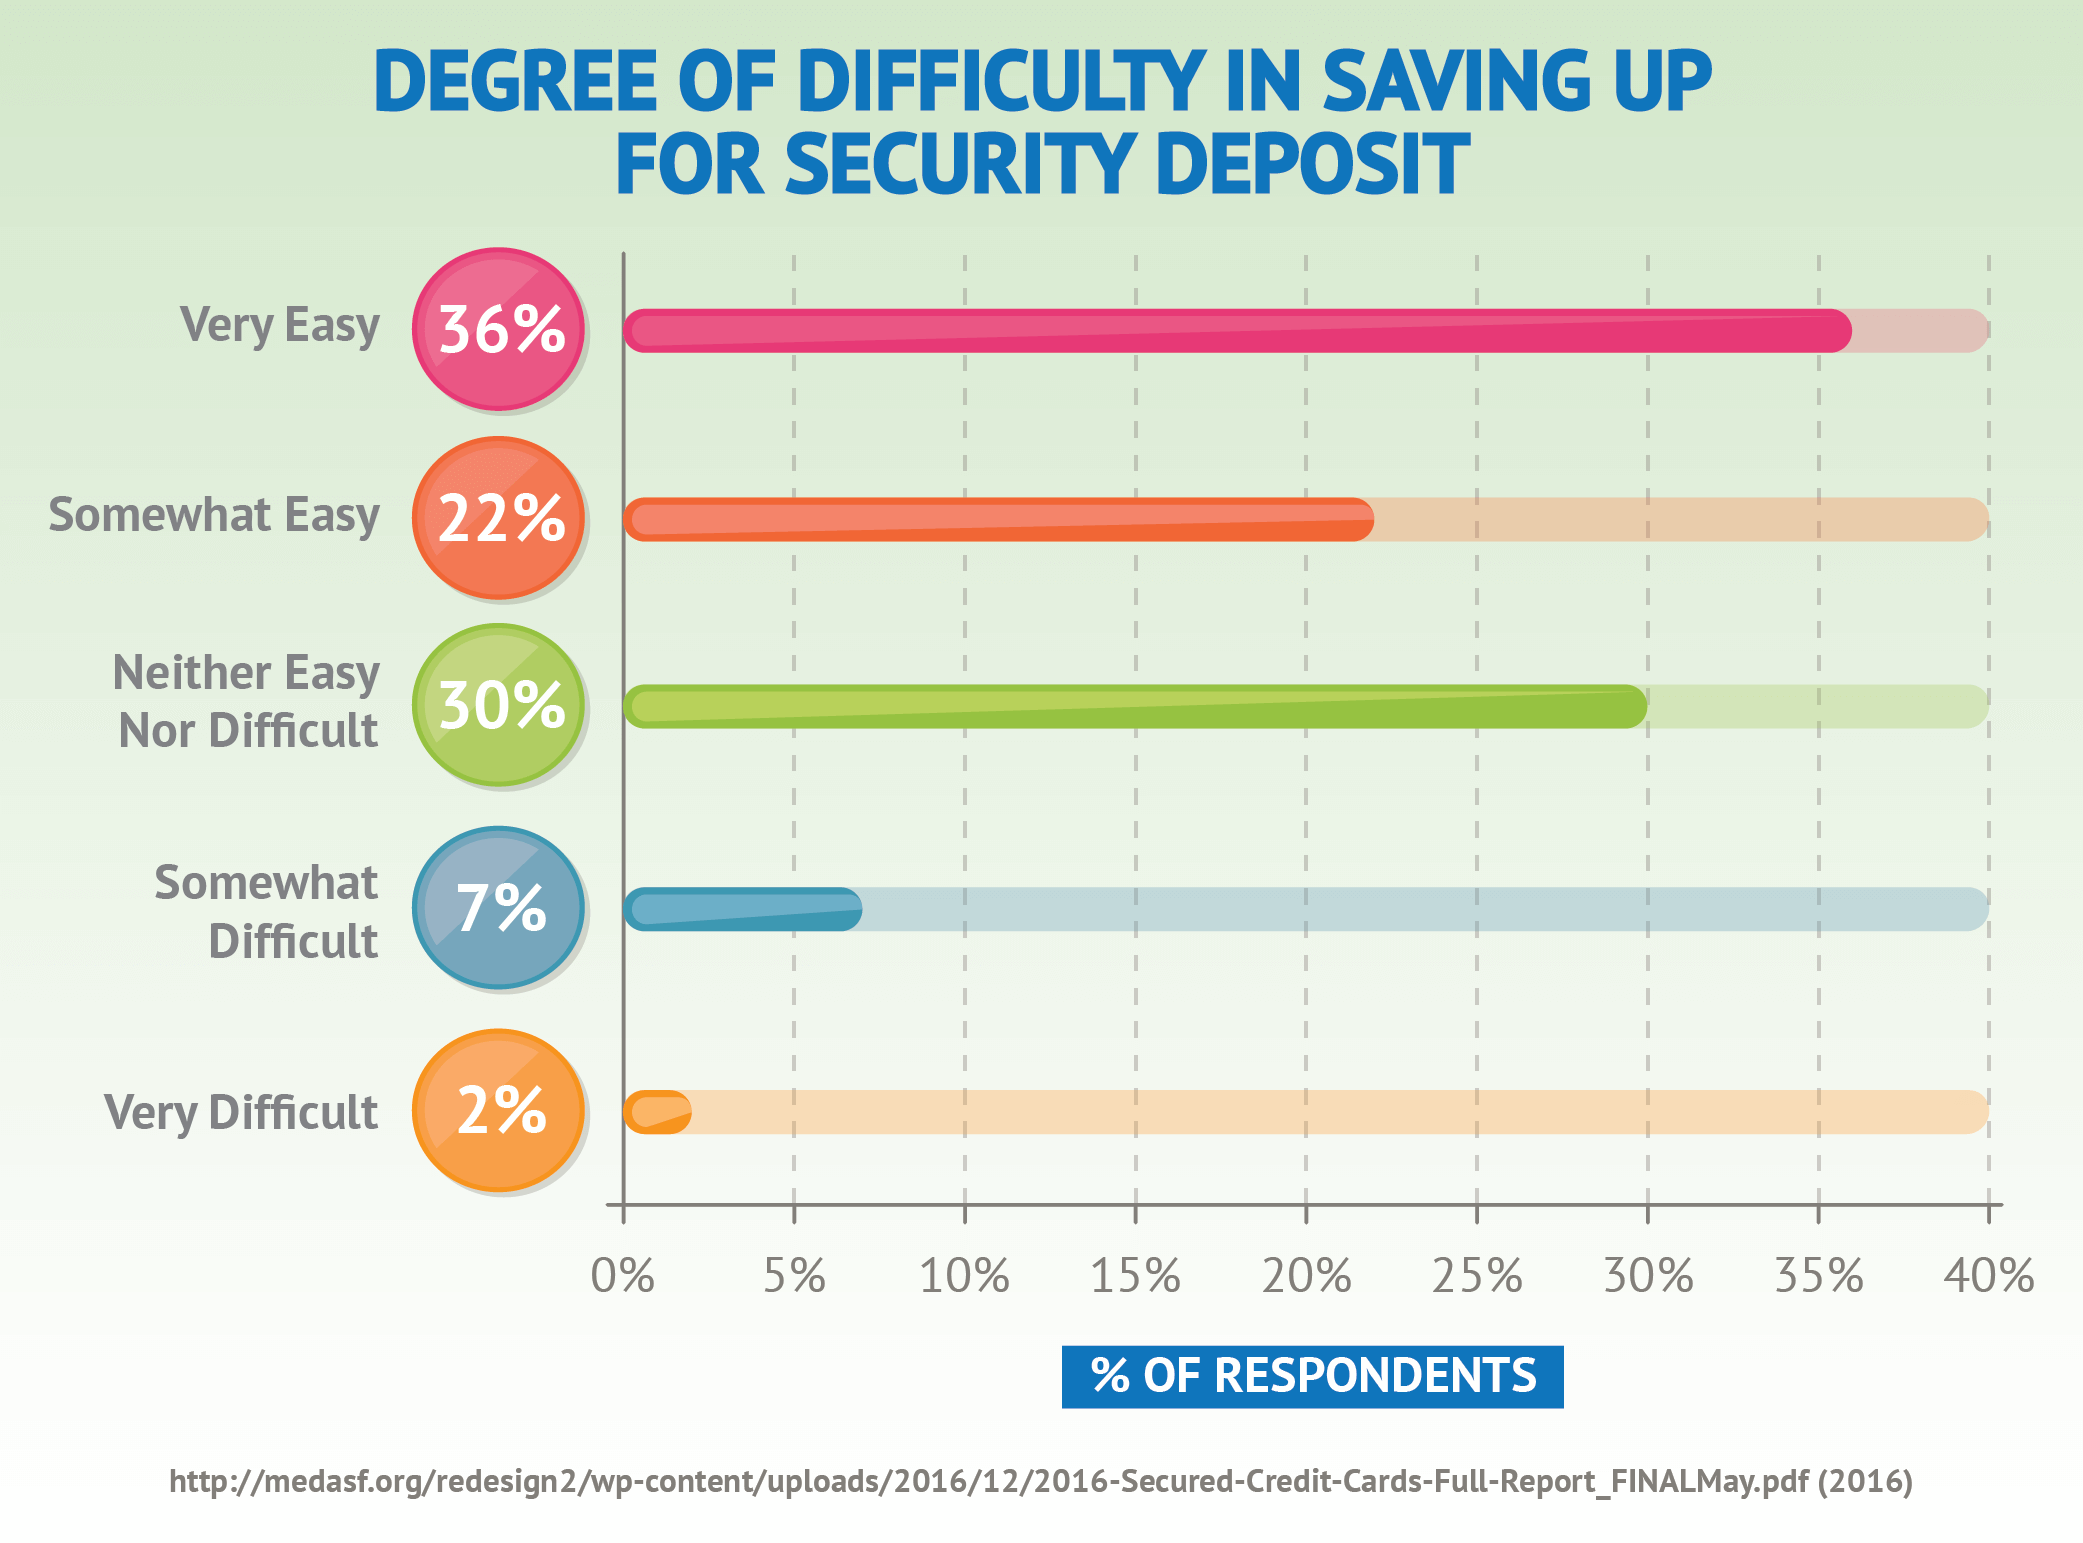 Degree of Difficulty In Saving Up For Security Deposit